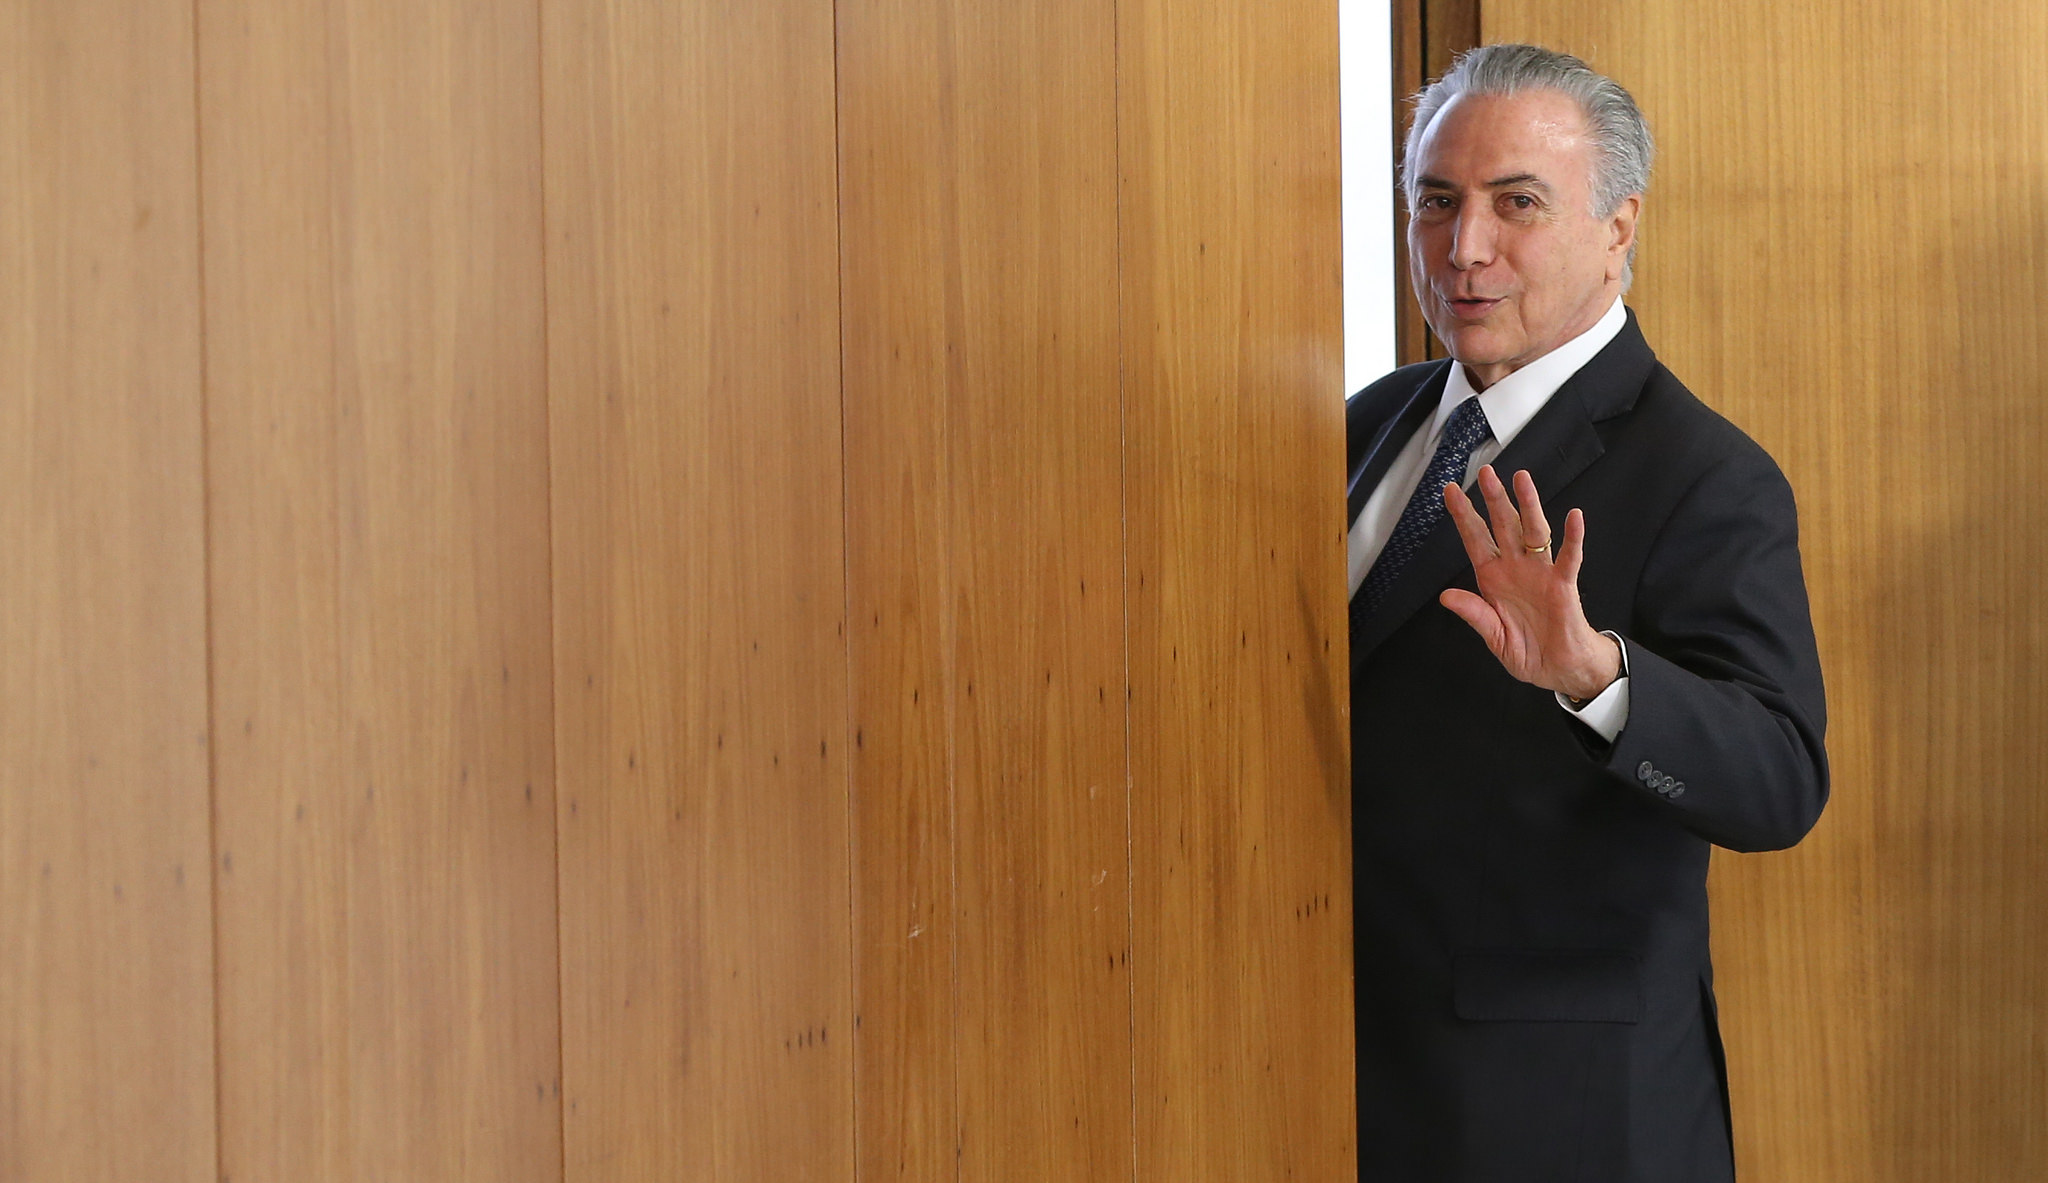 As Mr. Temer's term as Brazil president comes to an end, we take a look back at how Brazil changed over his 28 months as head of state